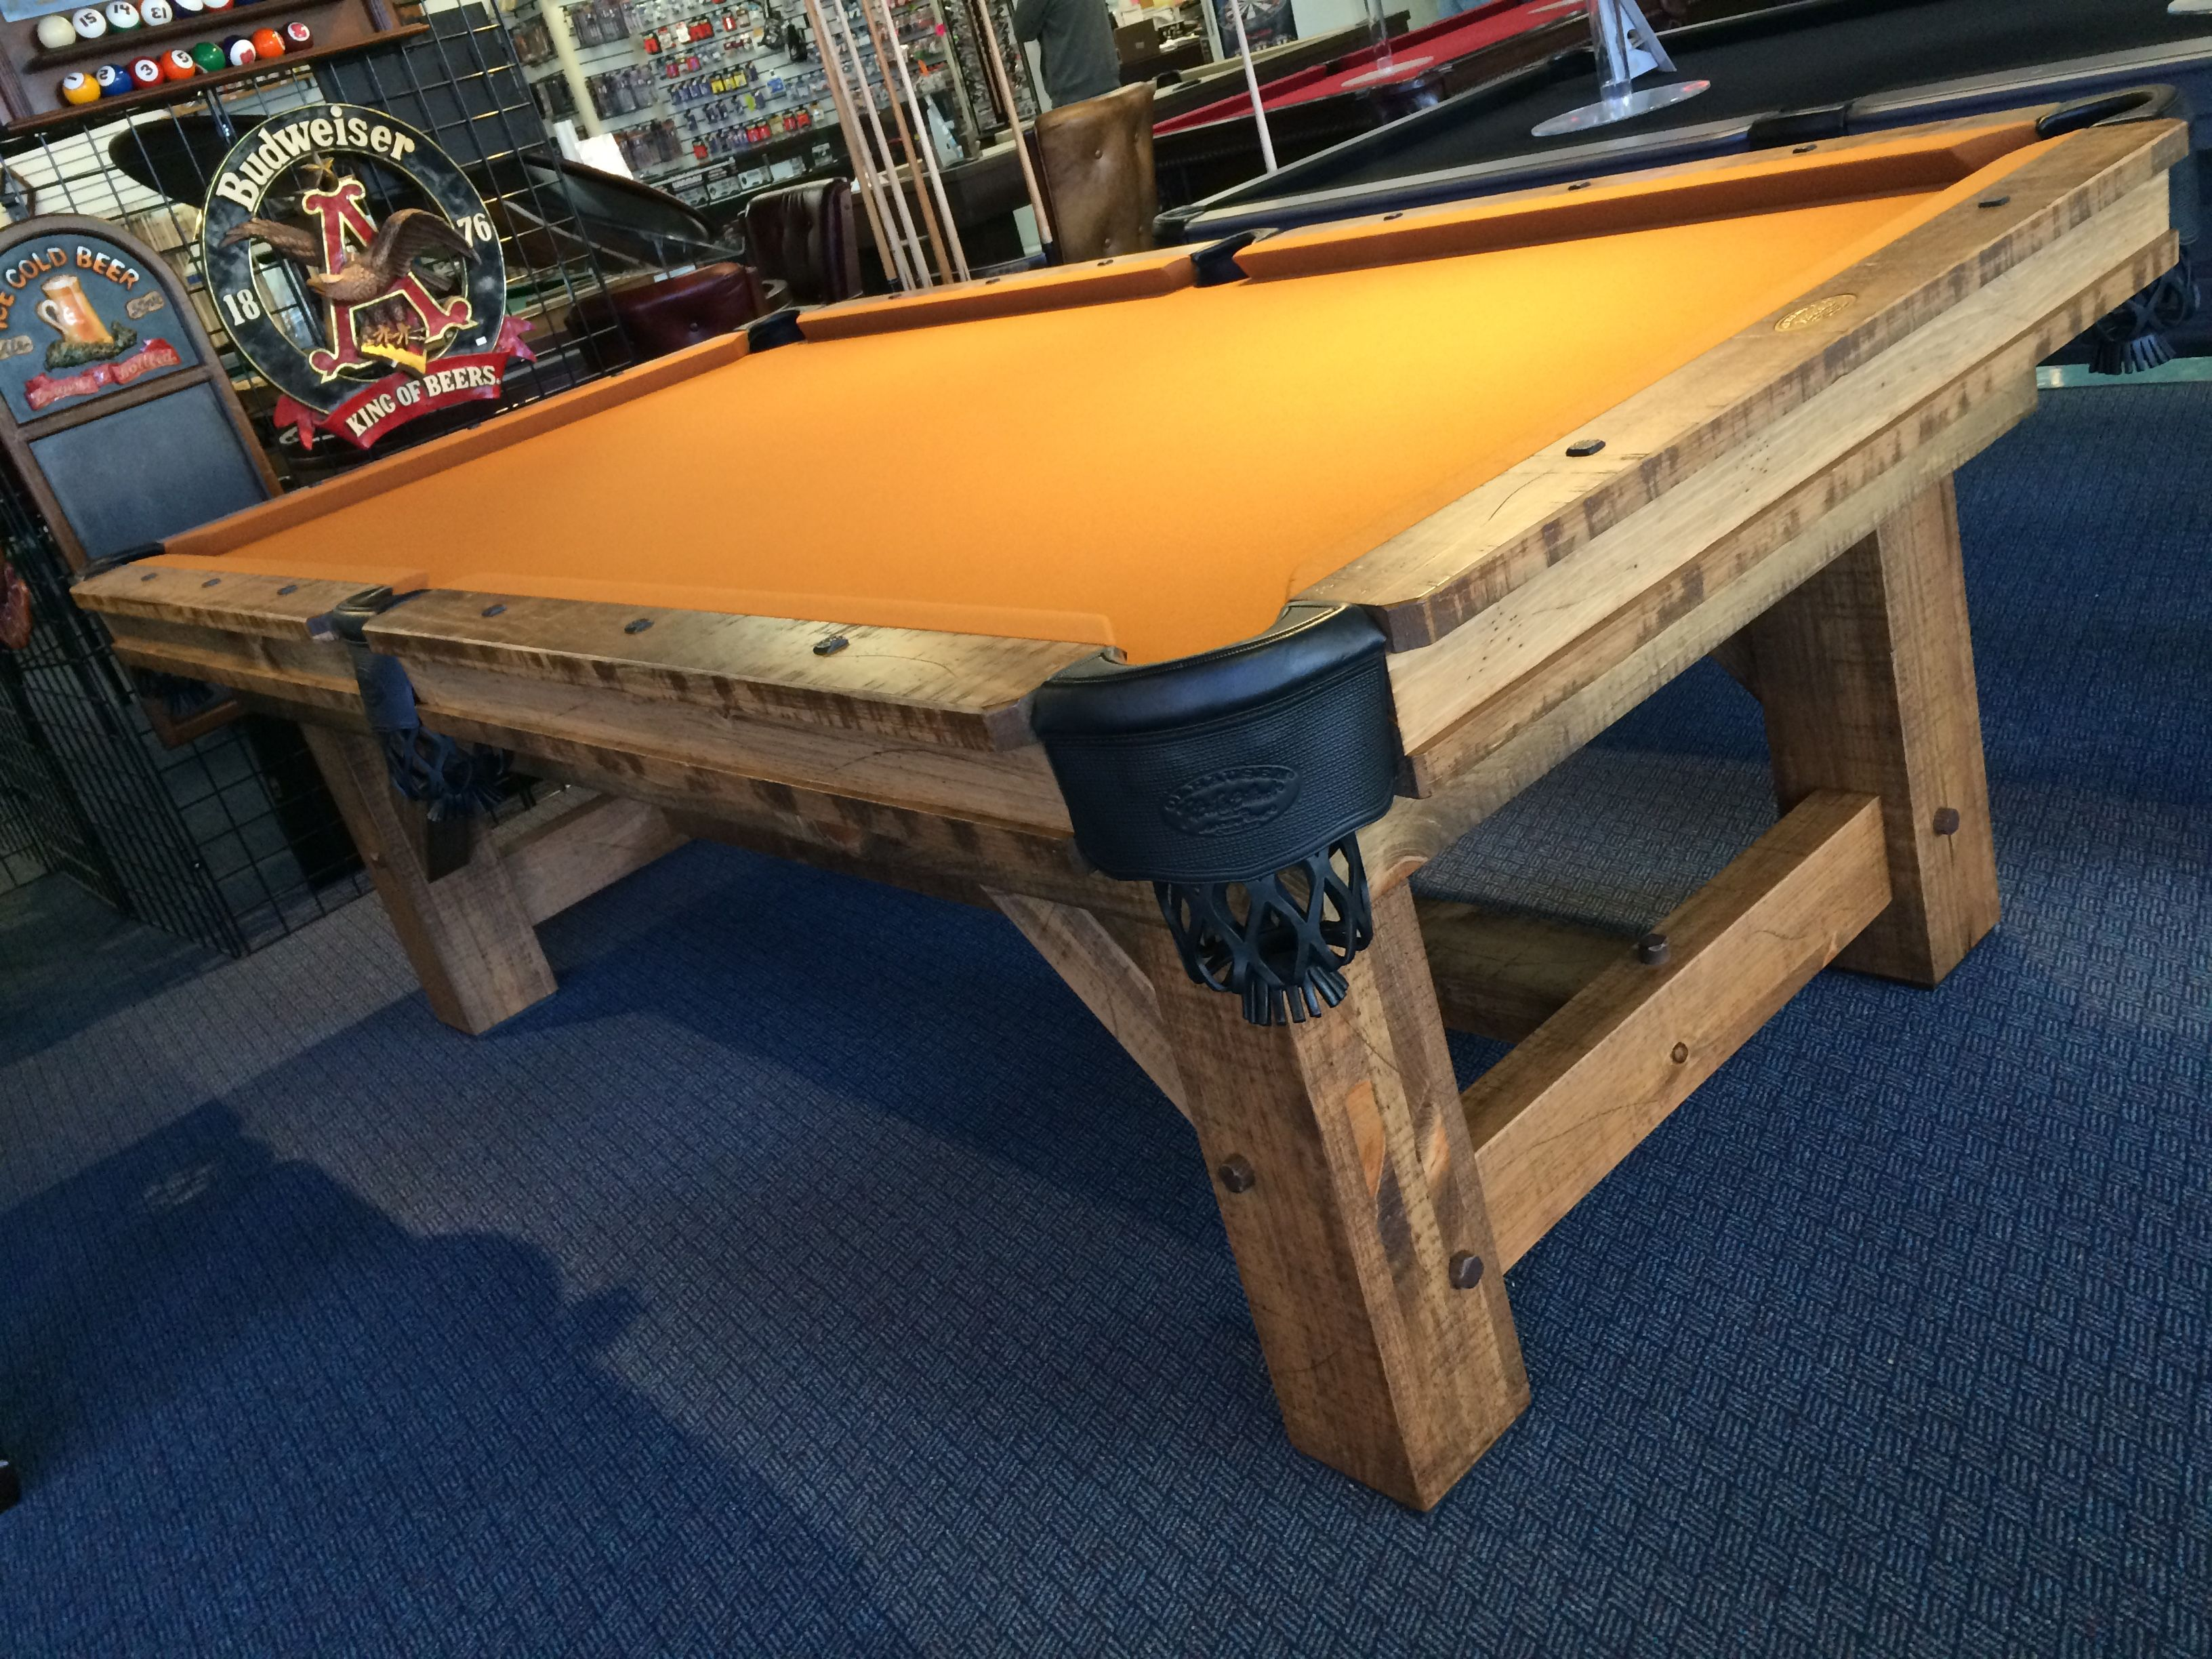 We Are Thrilled To Have The New Olhausen Timber Ridge Pool Table On Display  In Our Raleigh, NC Showroom. It Blends Rustic And Modern Details For An  Very ...